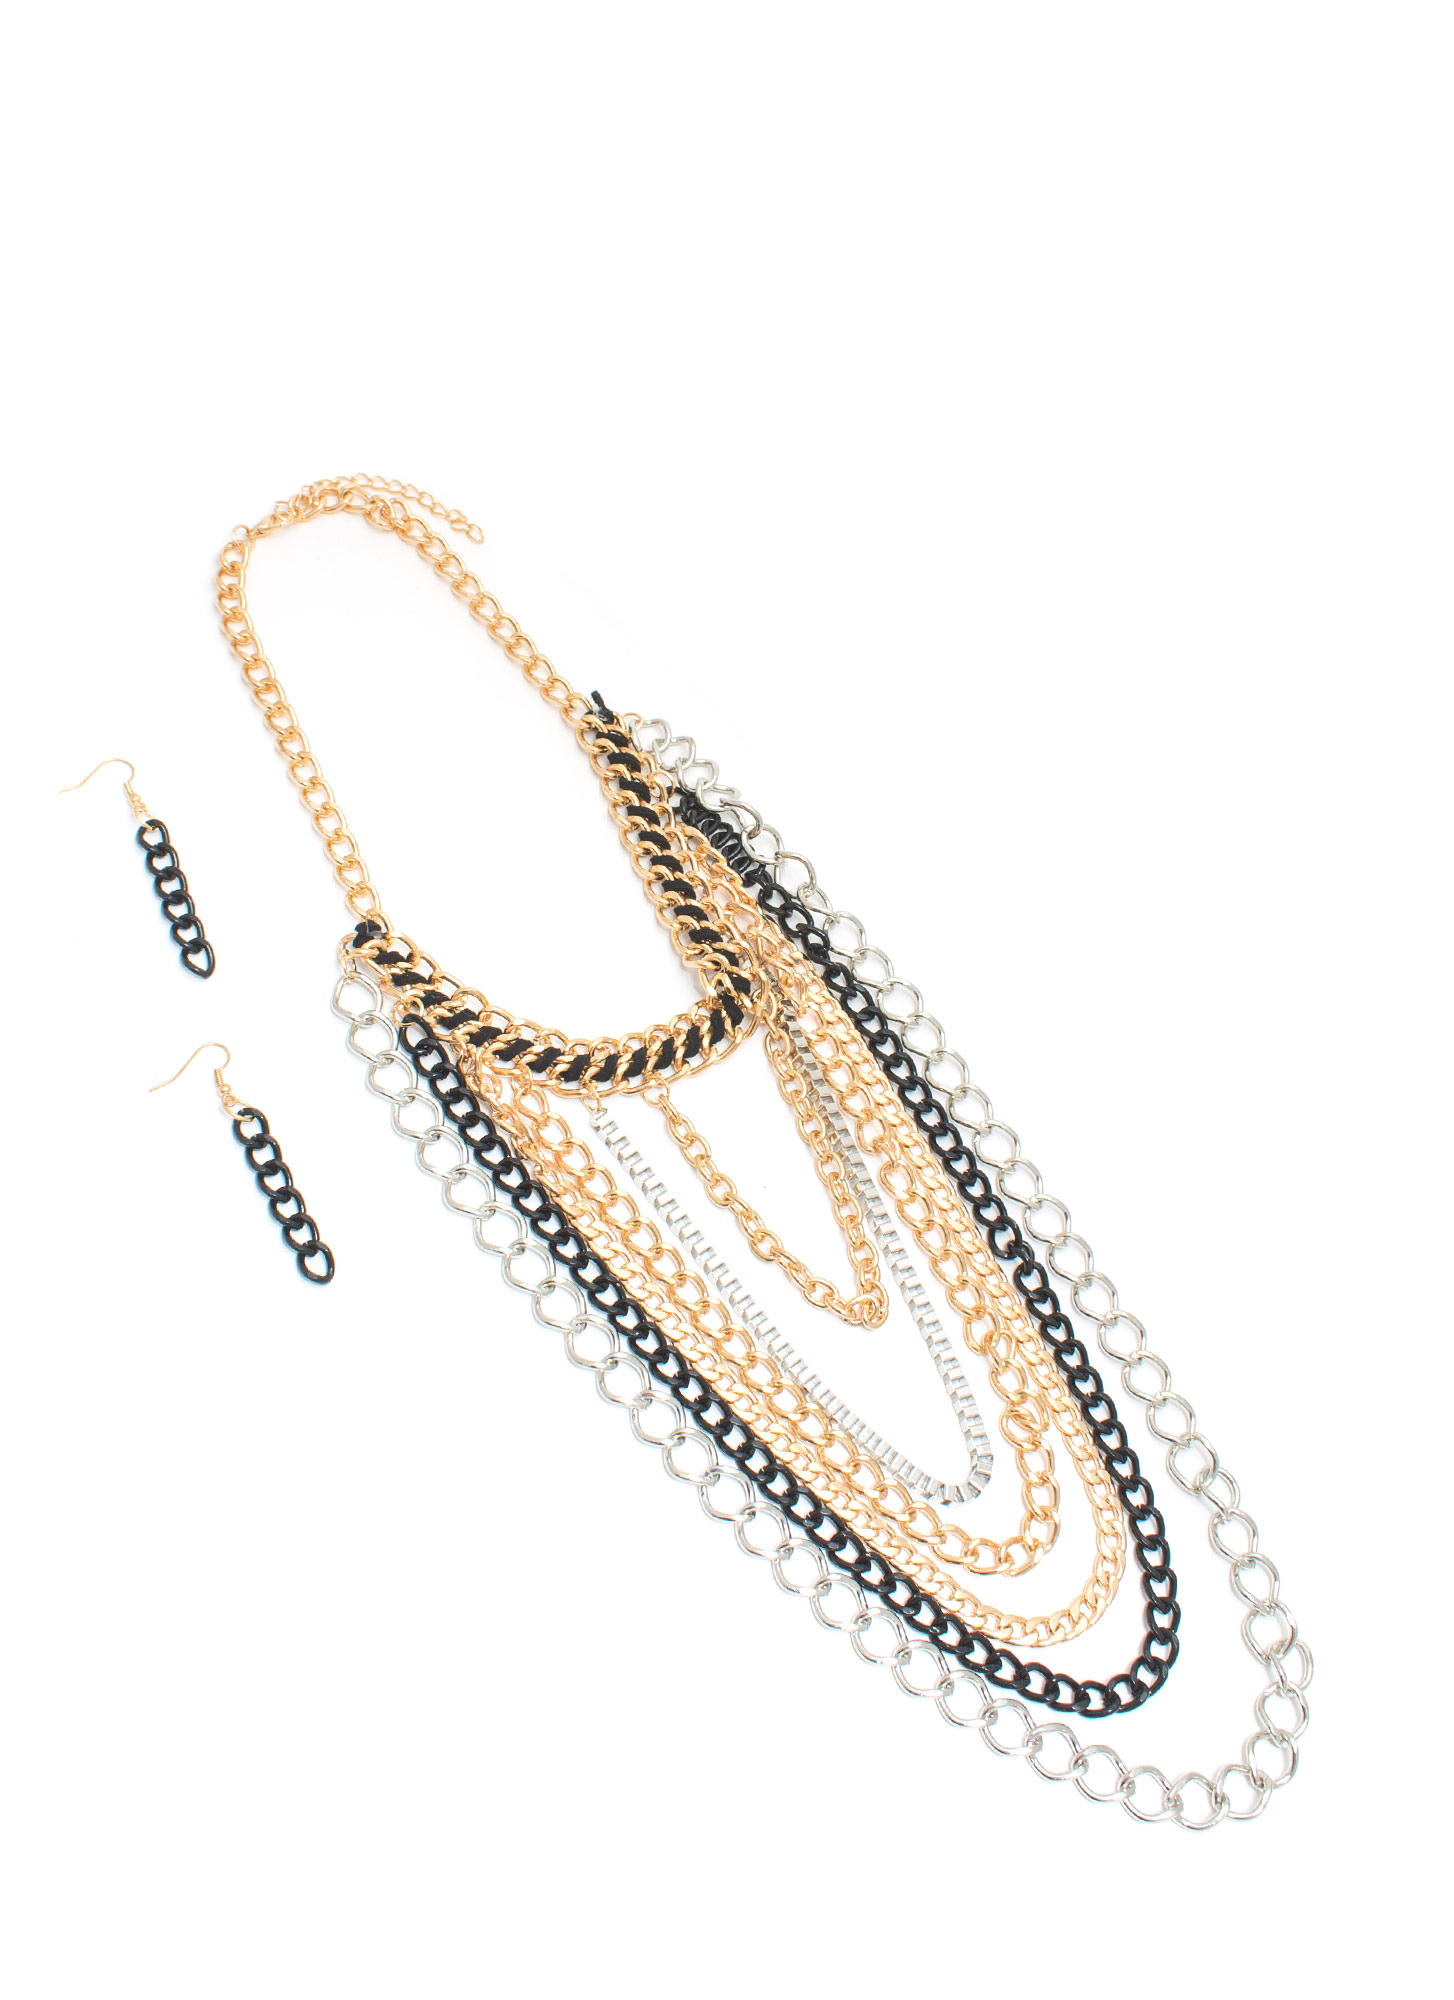 Indecision Mixed Metal Chains Necklace Set GLDMULTI